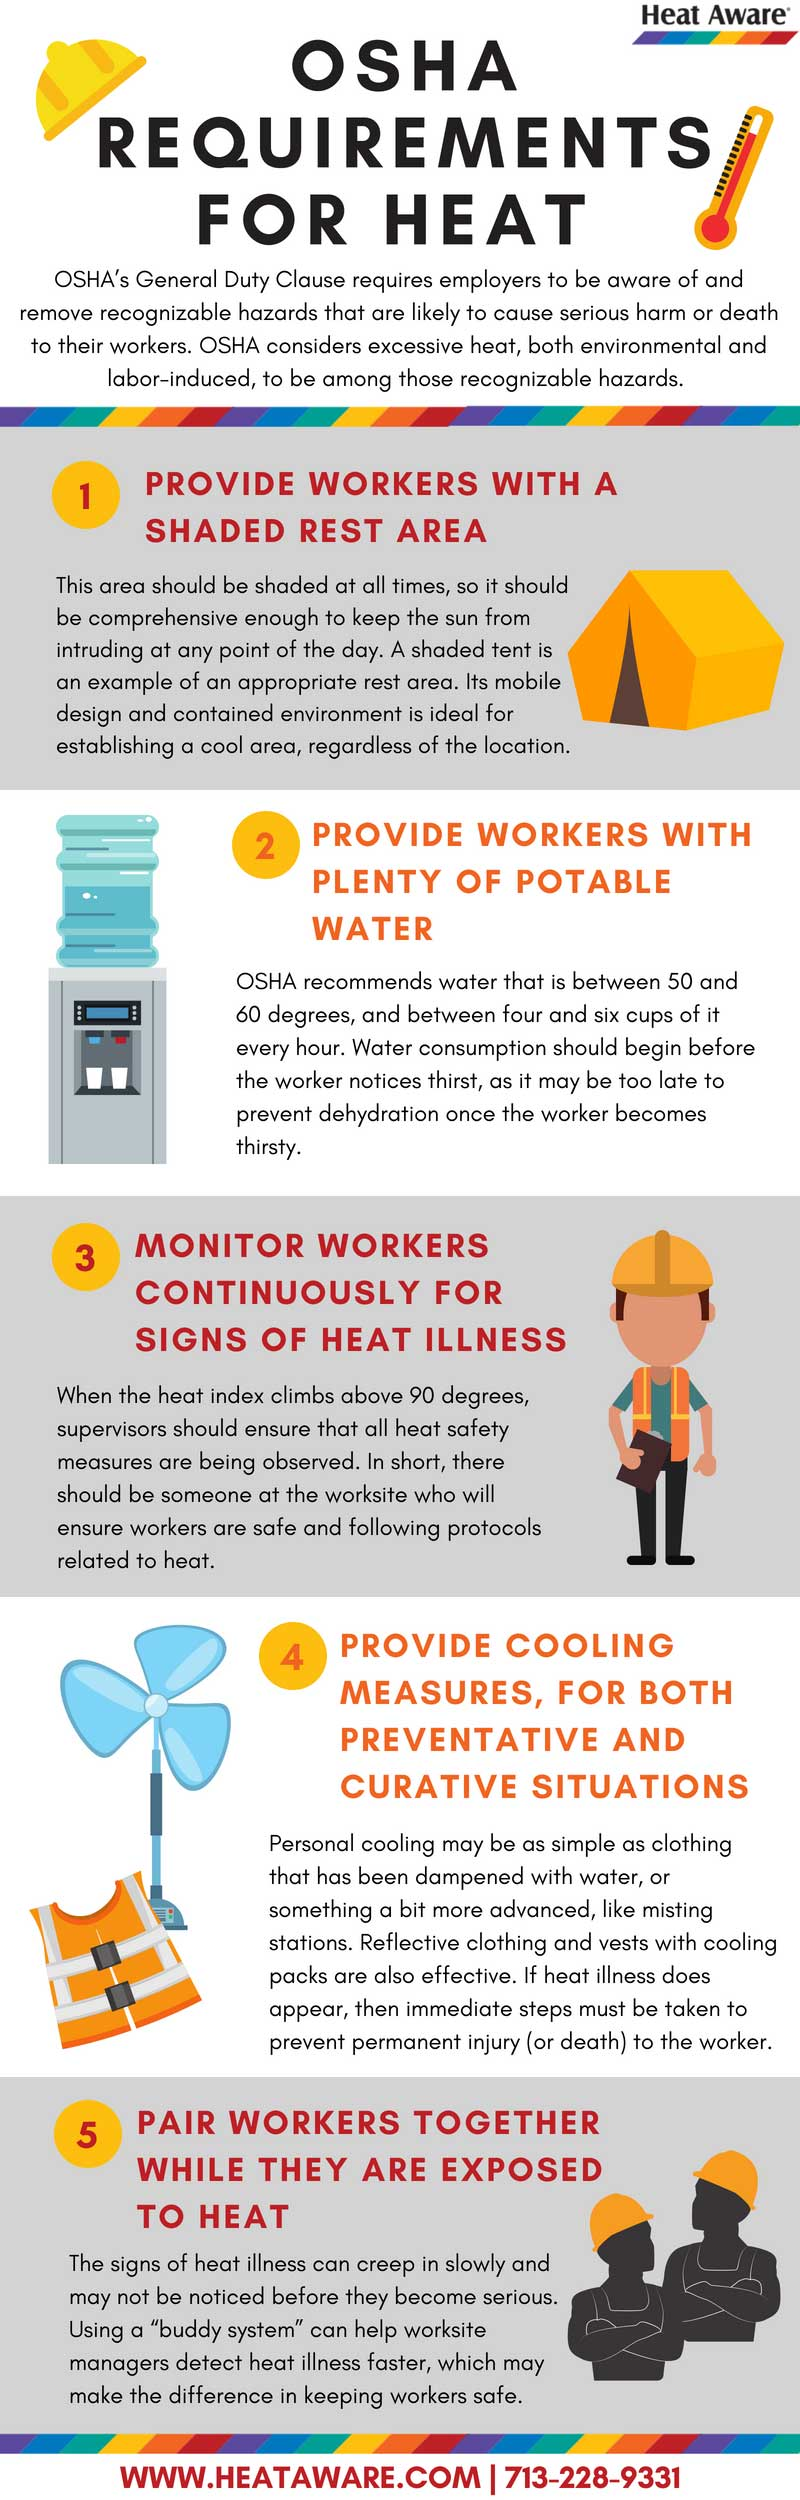 OSHA Requirements For Heat Safety